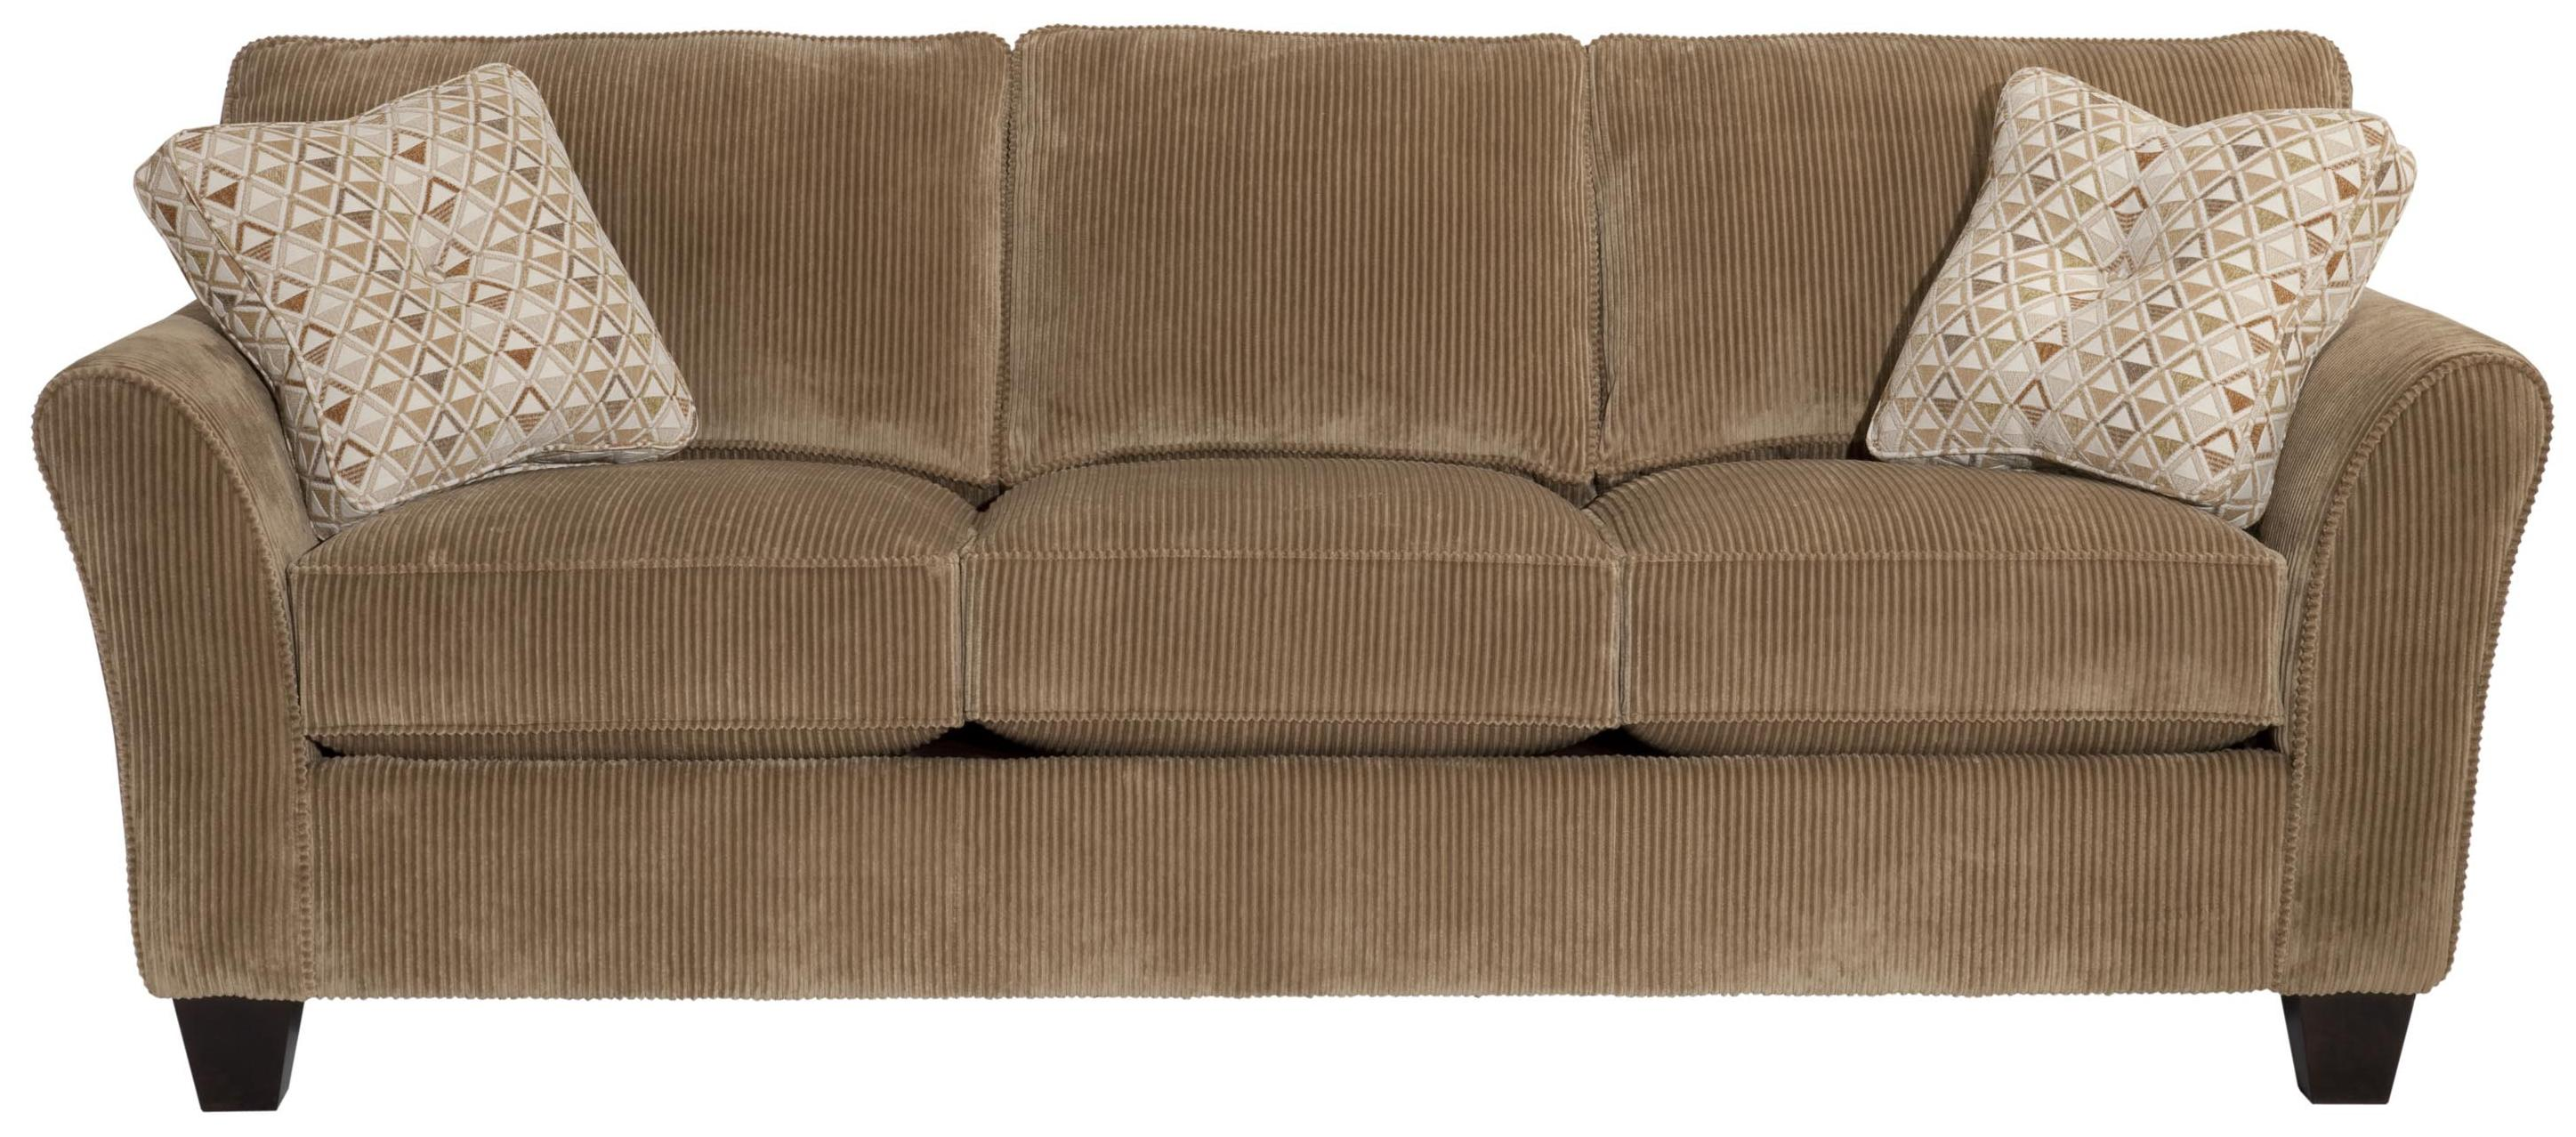 Broyhill Brown Corduroy Sofa Broyhill Express Maddie Quick Ship Sofa With Flared Arms Ahfa